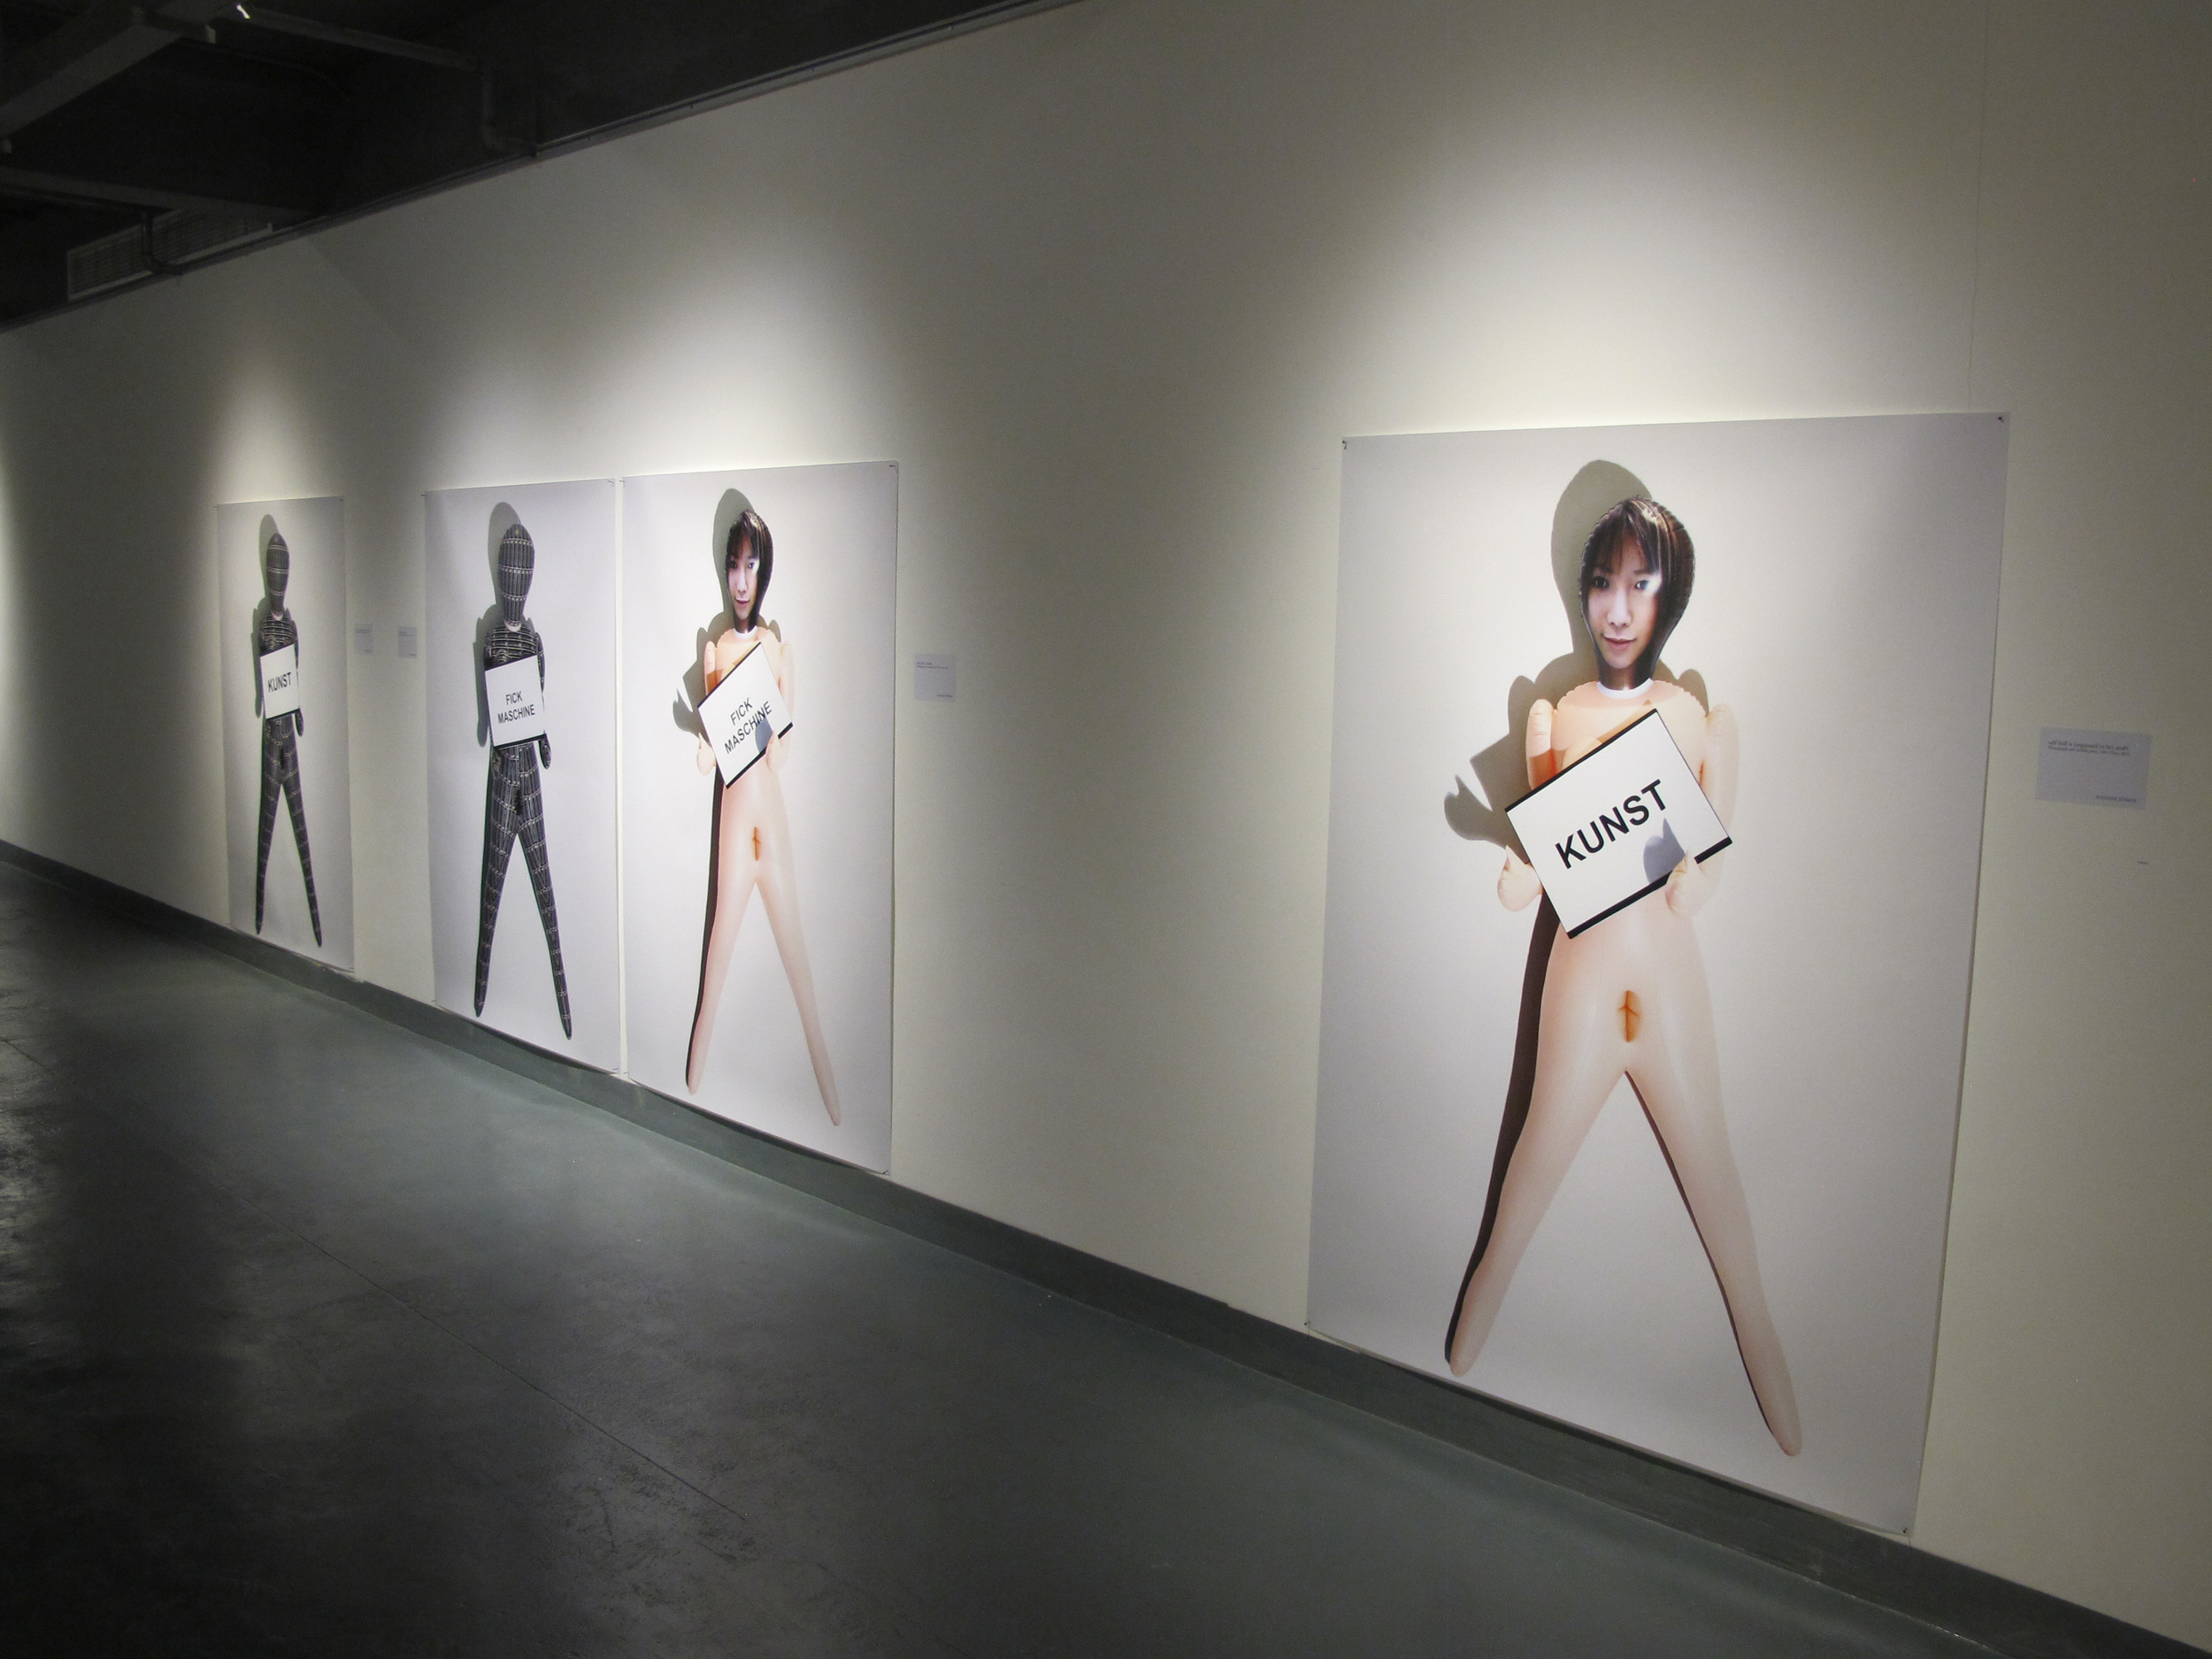 Installation view body noises,from the self-doll series, Tongqi art center Shanghai, China, 2012.